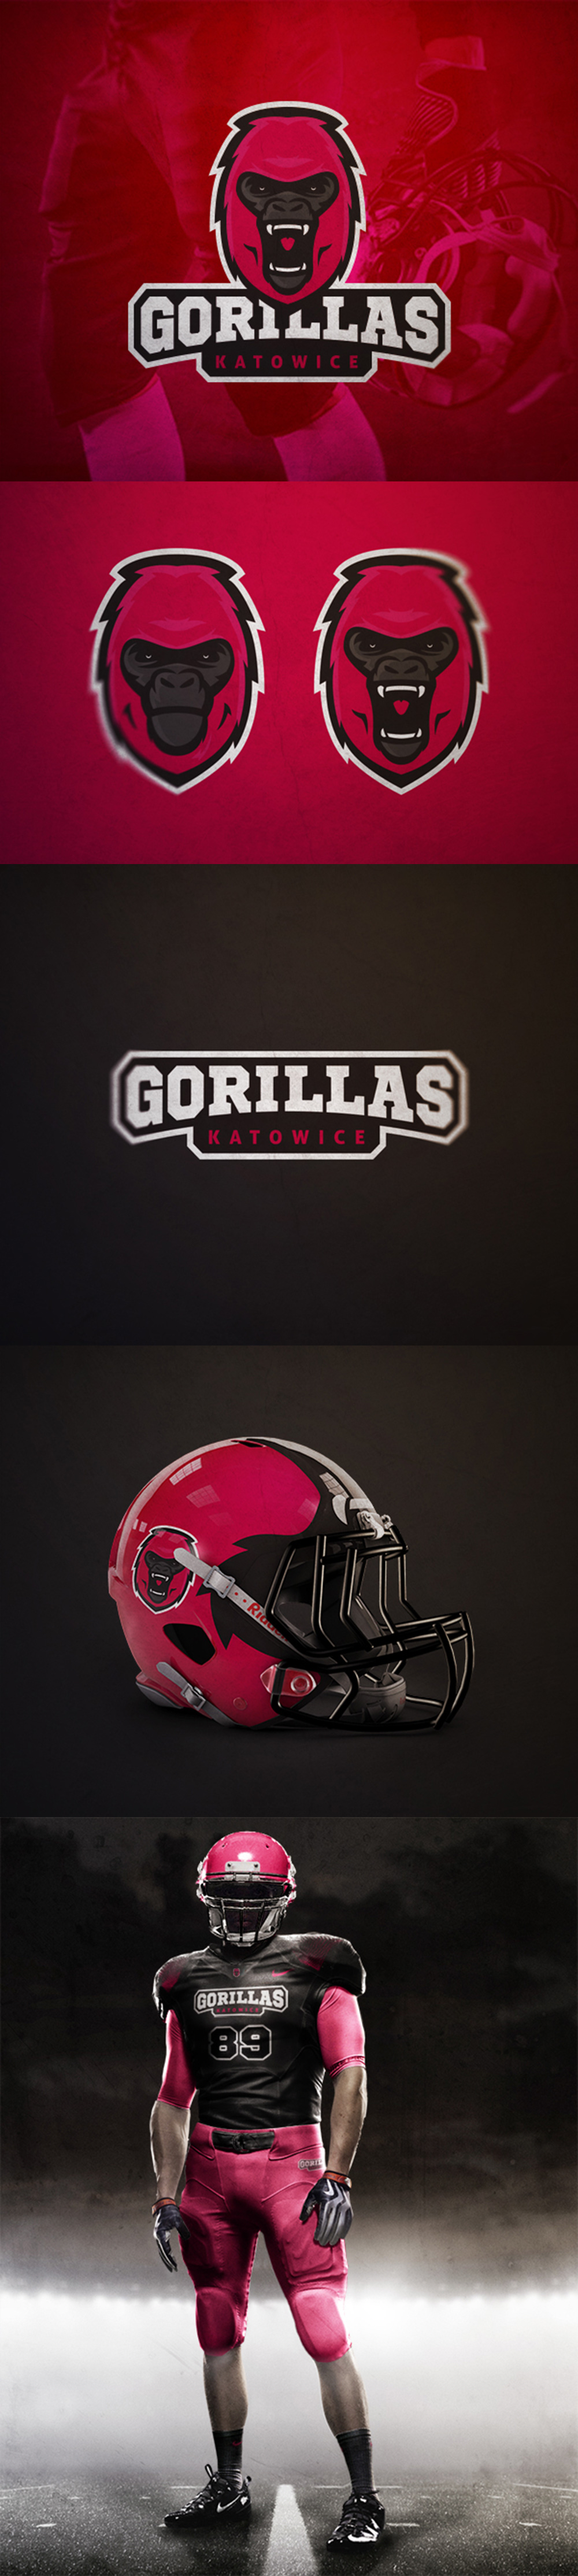 Creative American Football Team Logo and Identity